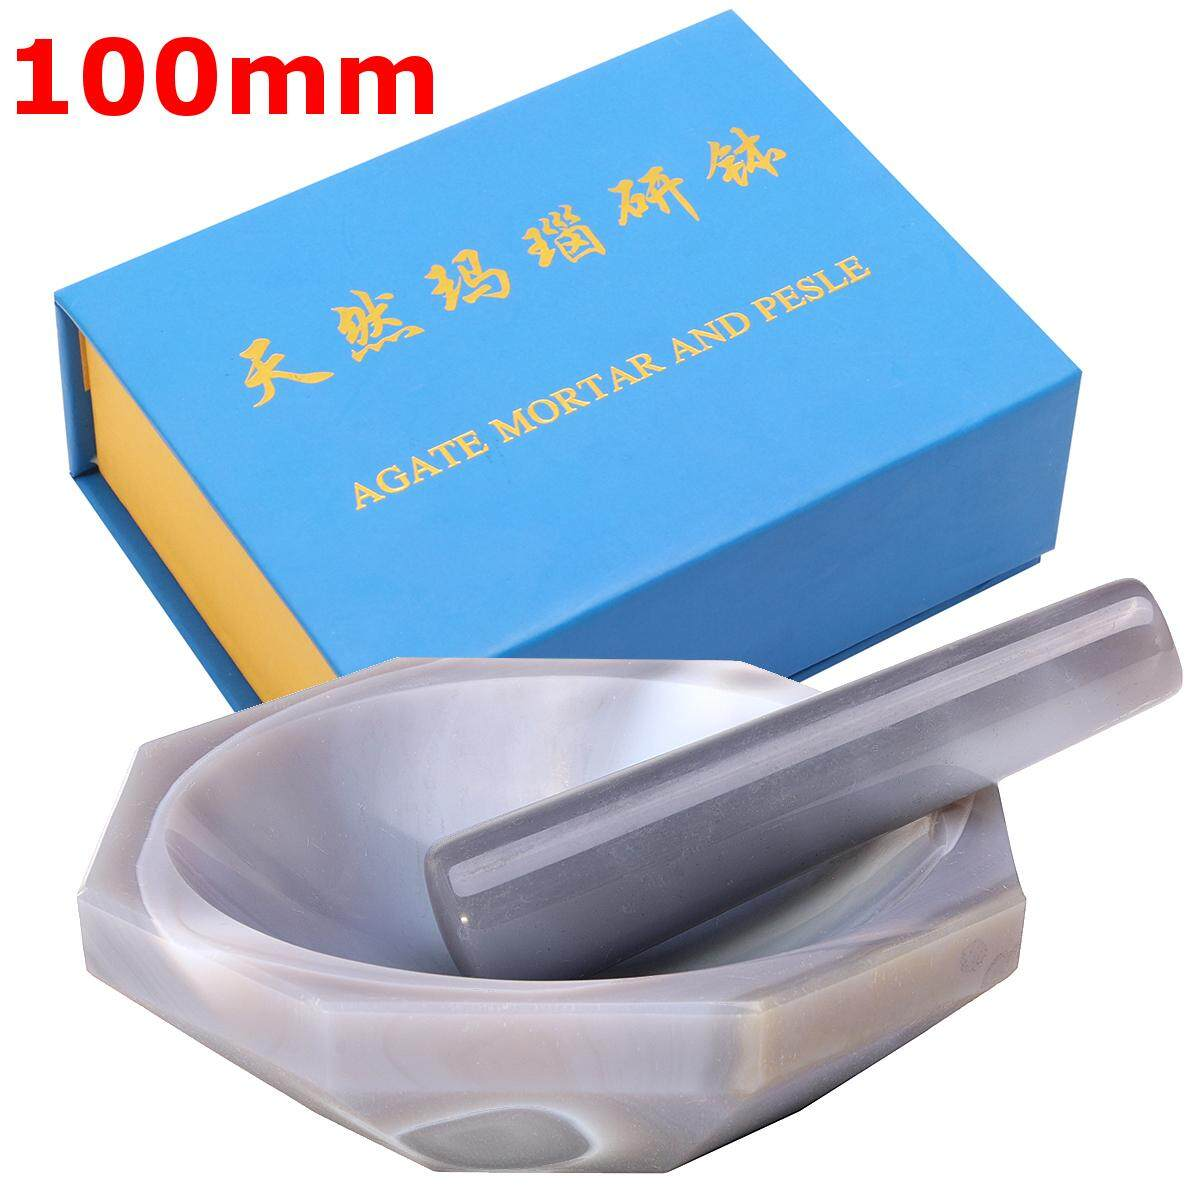 100mm Natural Agate Mortar And Pestle Grind The Solid Make The Solids Mixing Set By Moonbeam.